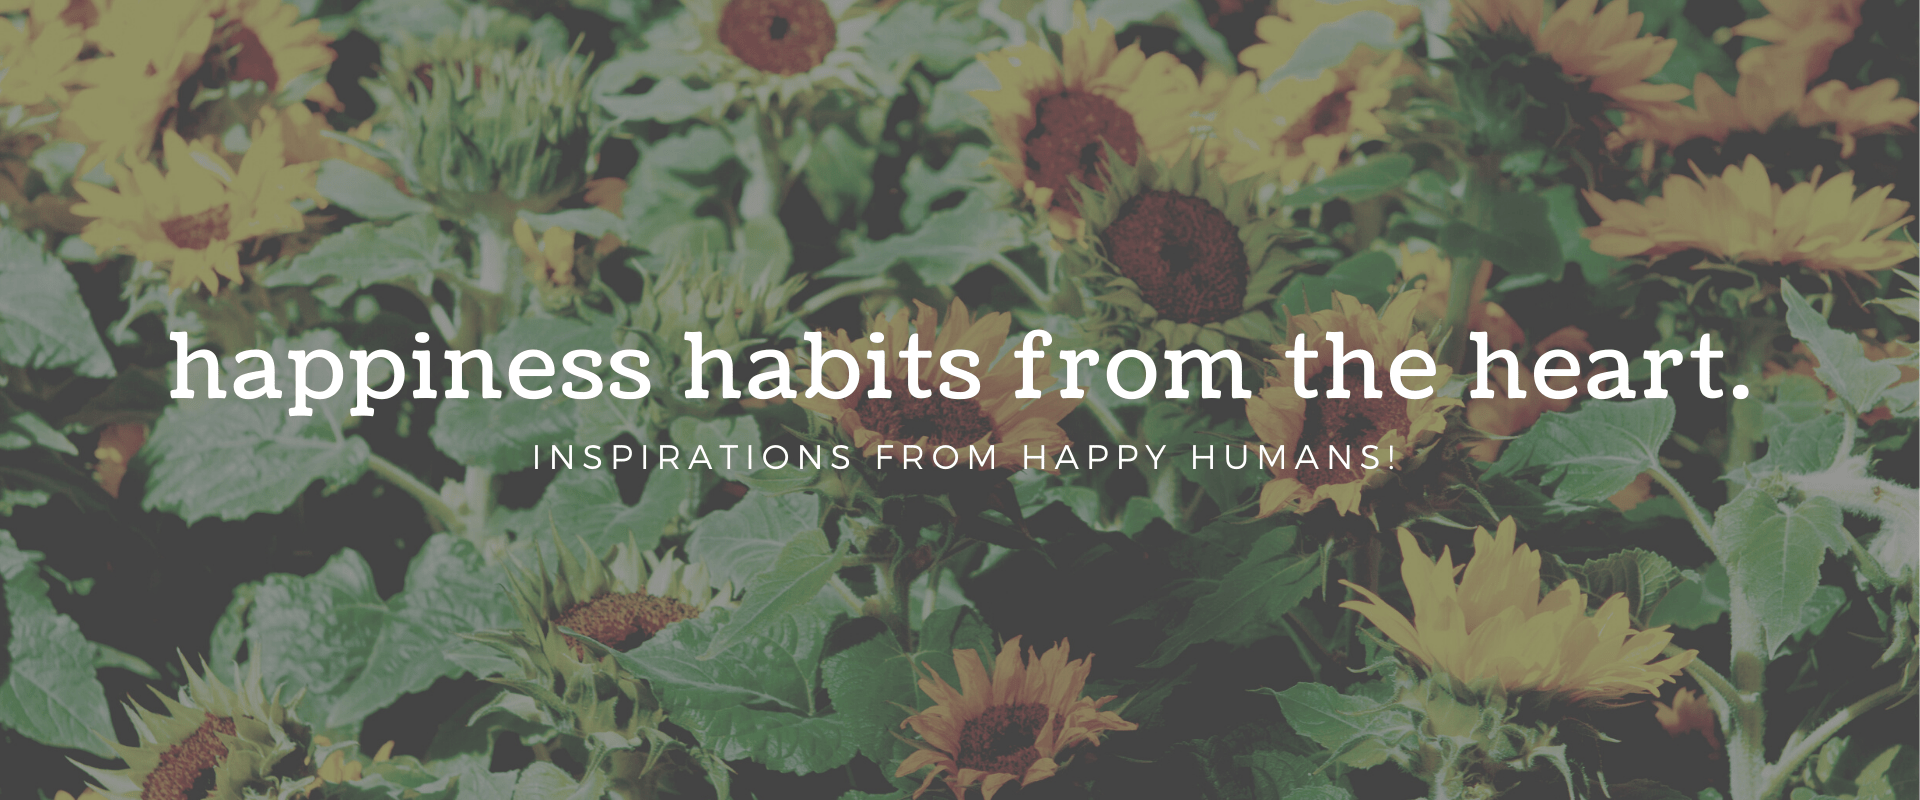 Happiness Habits from the Heart - SOH